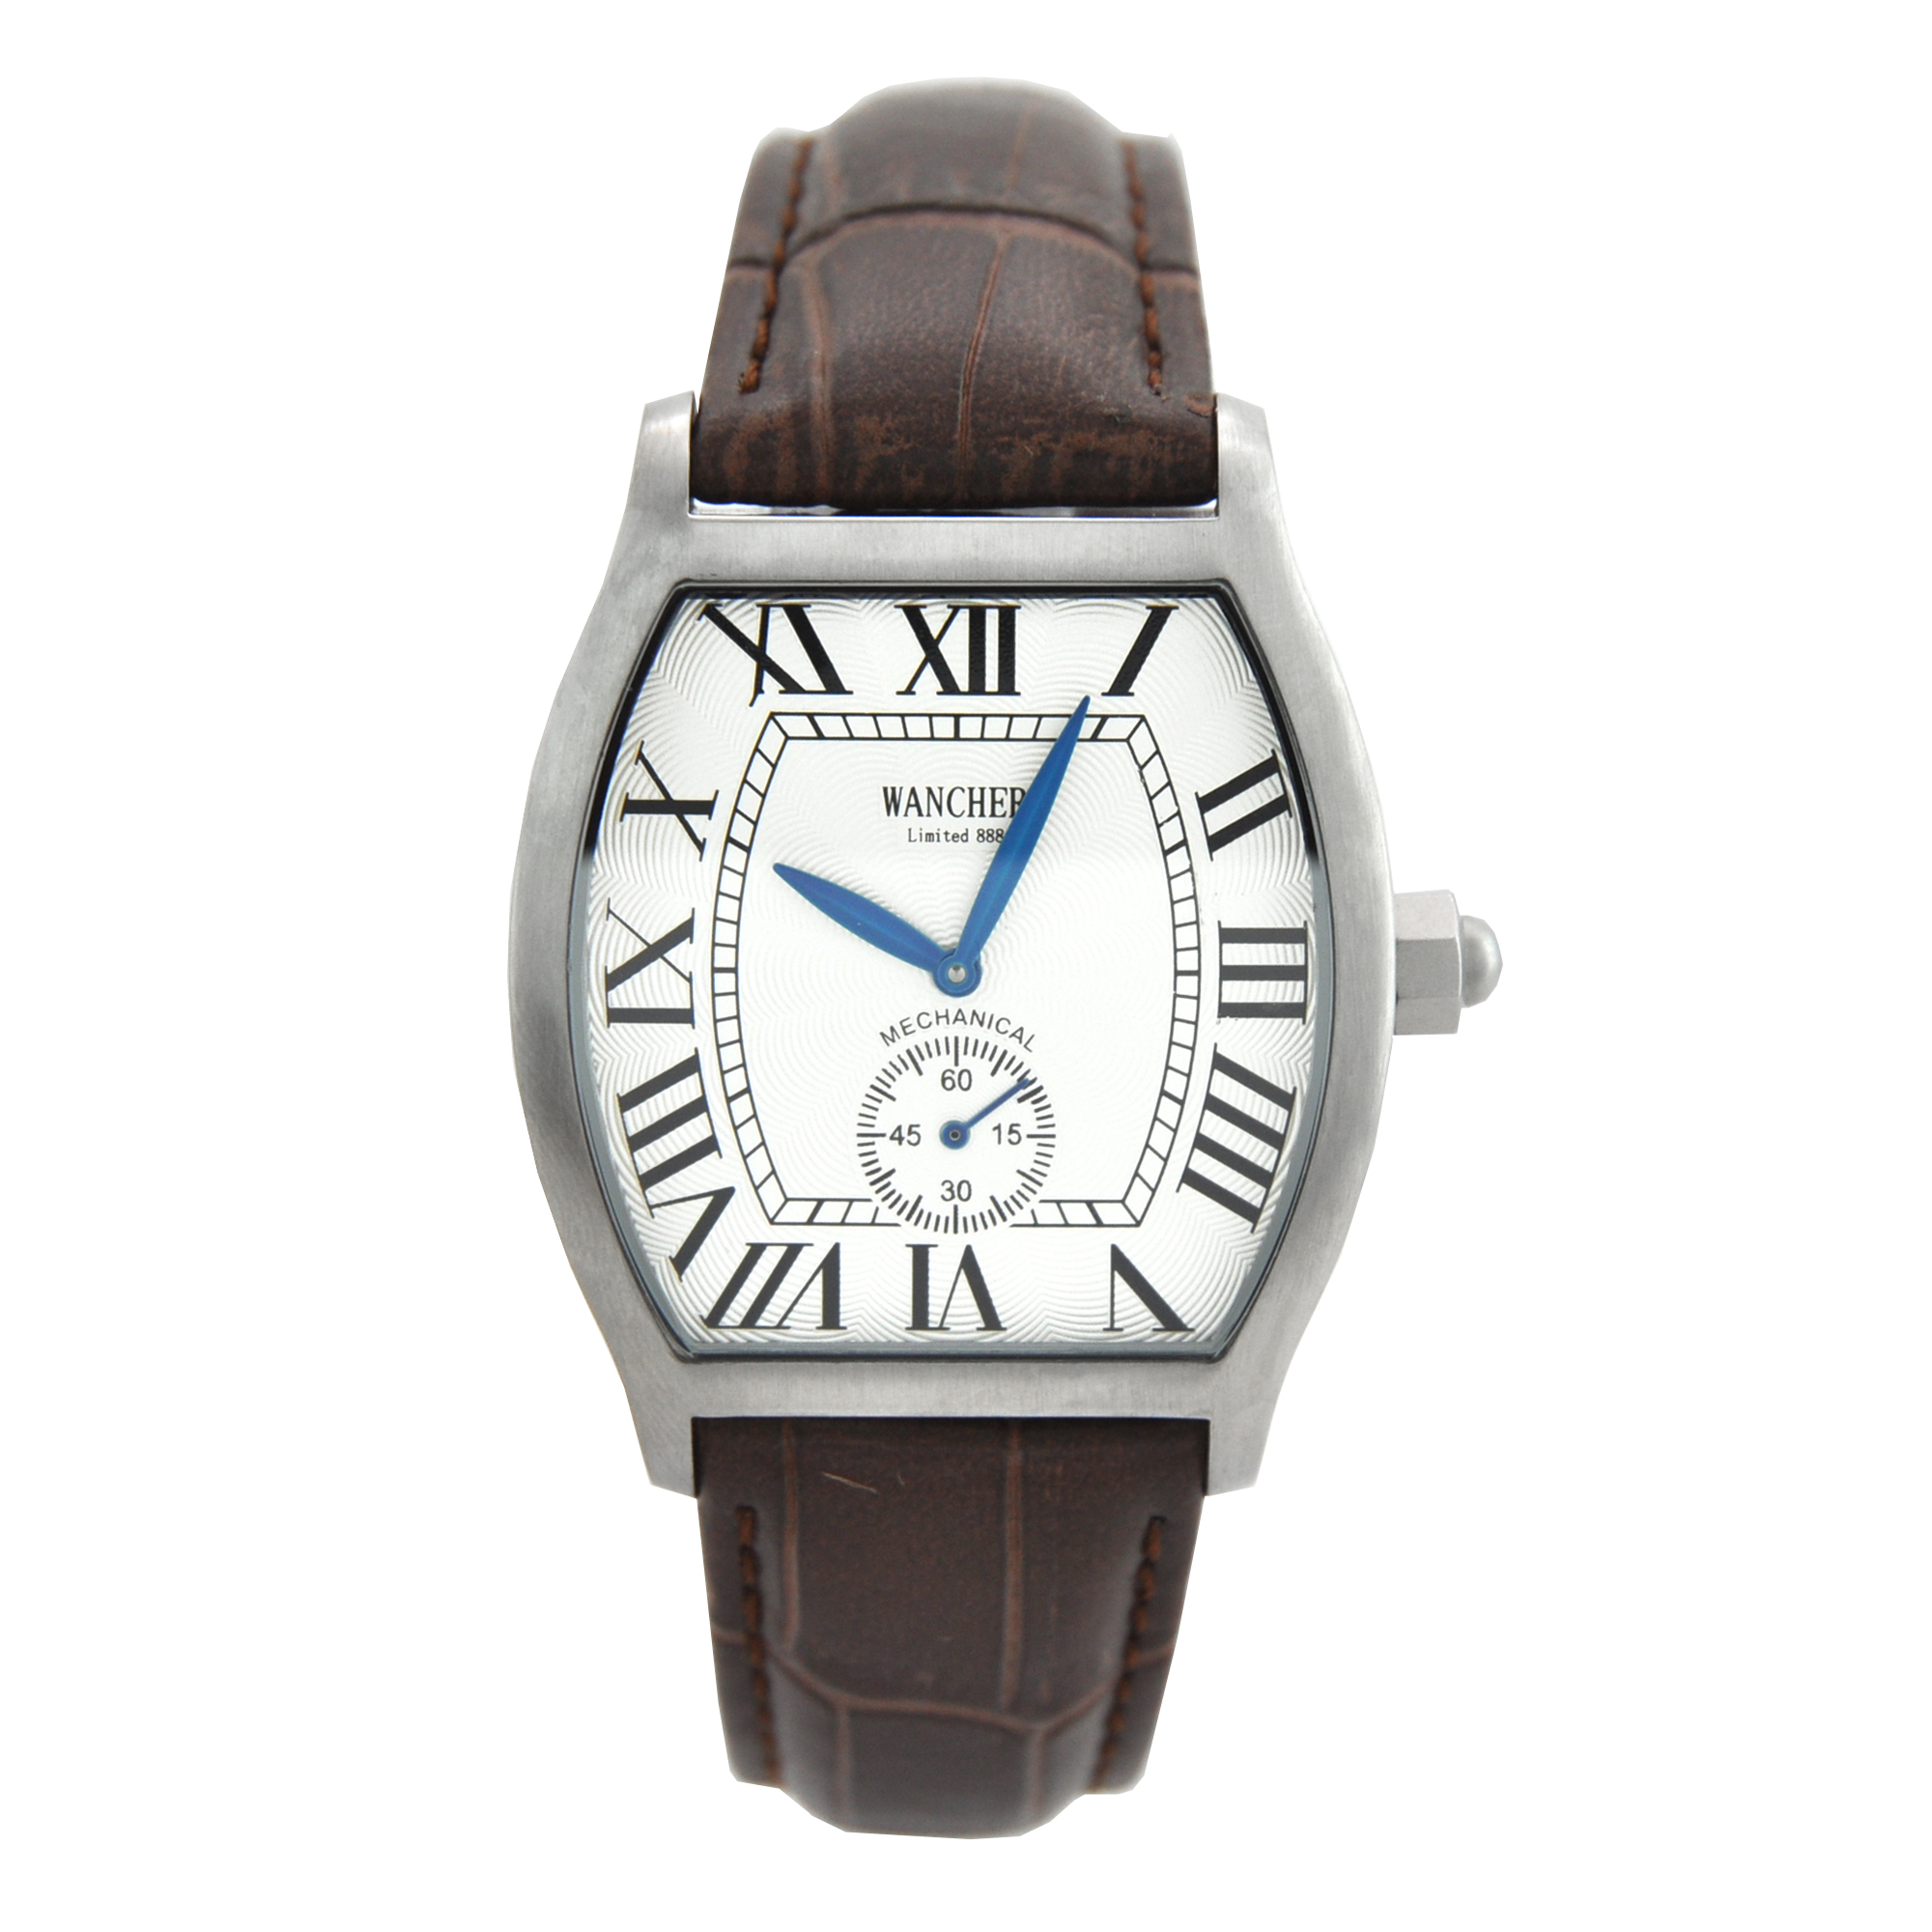 Tonneau Shaped - As you might know, the tonneau shaped watches became extremely popular in the early 1900. Until now, the popularity of this shape is still expanding all over the world. And if you are looking for a classic occasion watch, this product is for you.